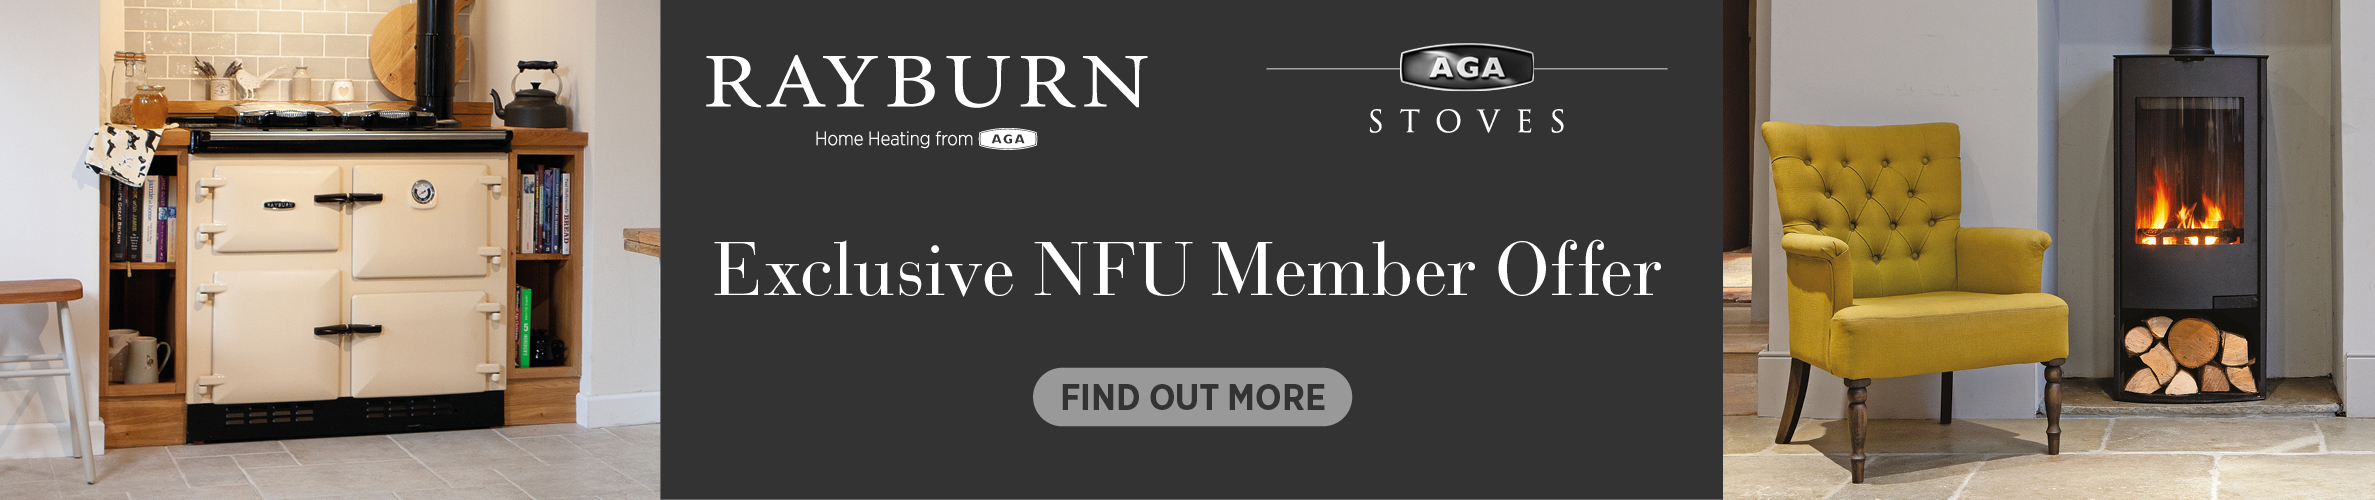 Exclusive NFU Members Offer